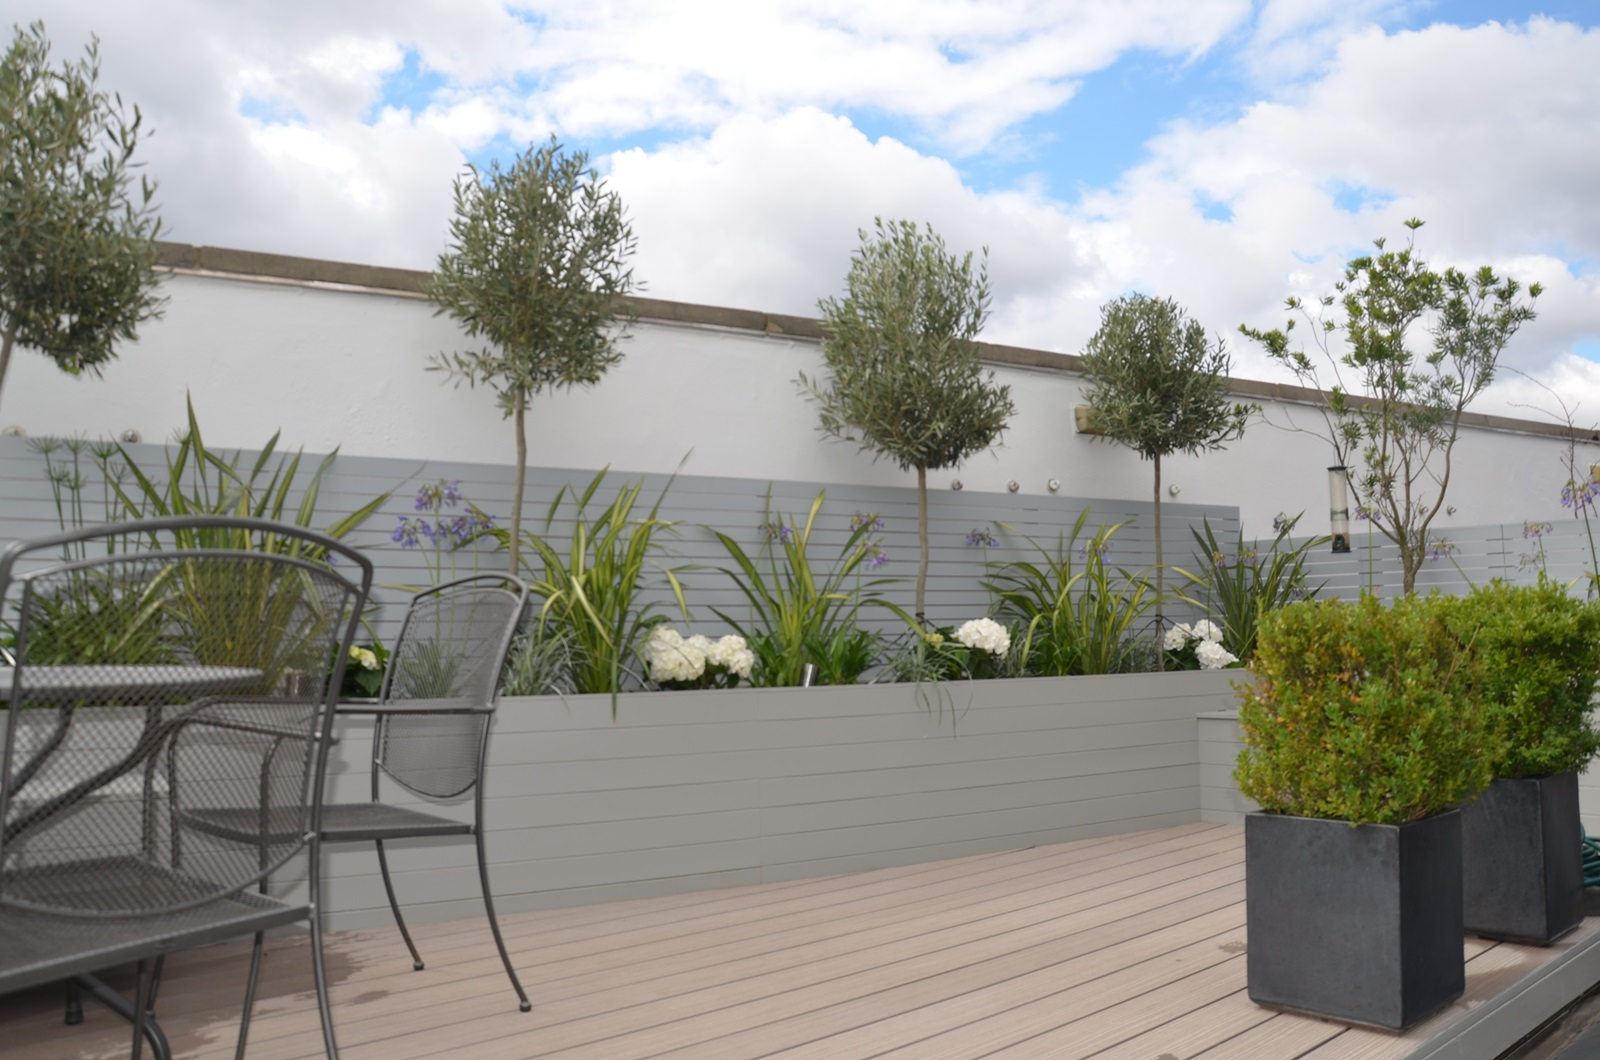 Tower bridge modern garden design roof penthouse terrace for Terrace design